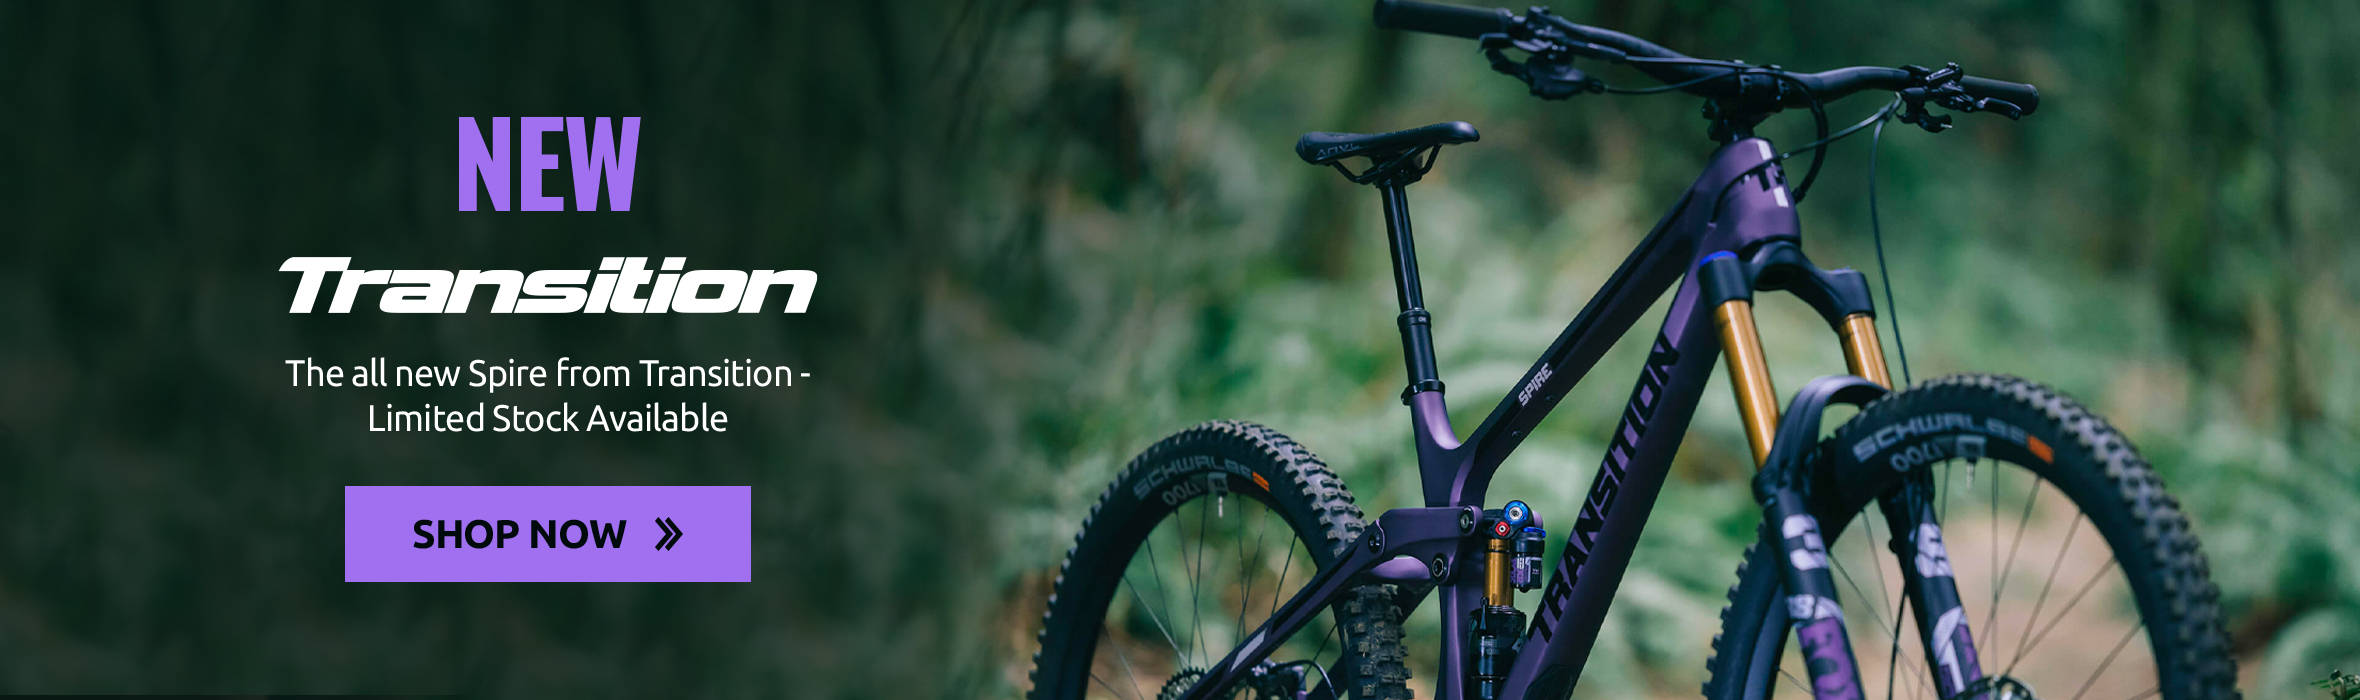 The all new Spire from Transition - Limited Stock Available